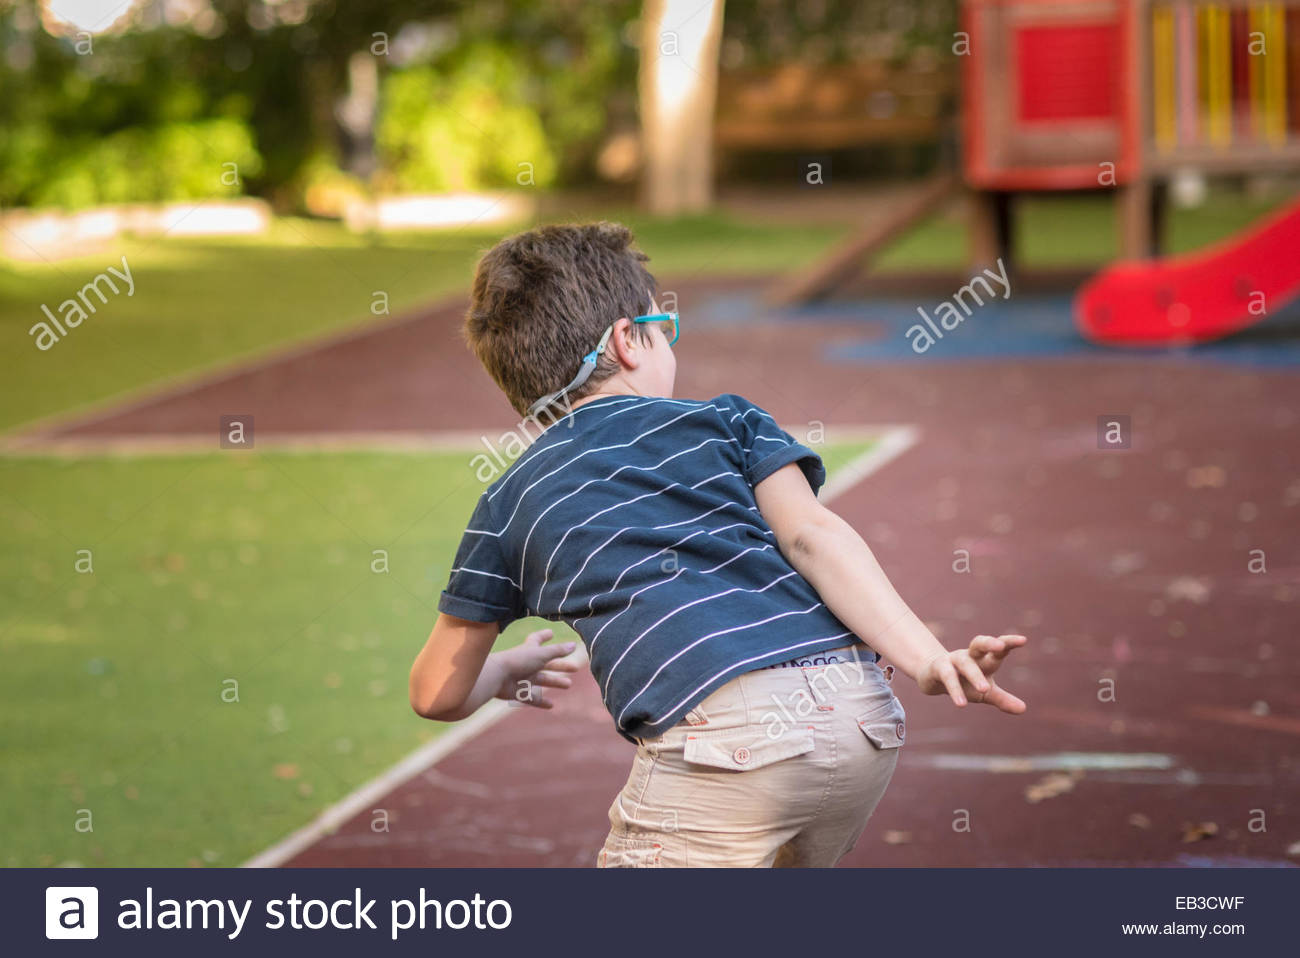 Spain, Valencia, Boy(8-9) playing hide-and-seek in playground Stock Photo